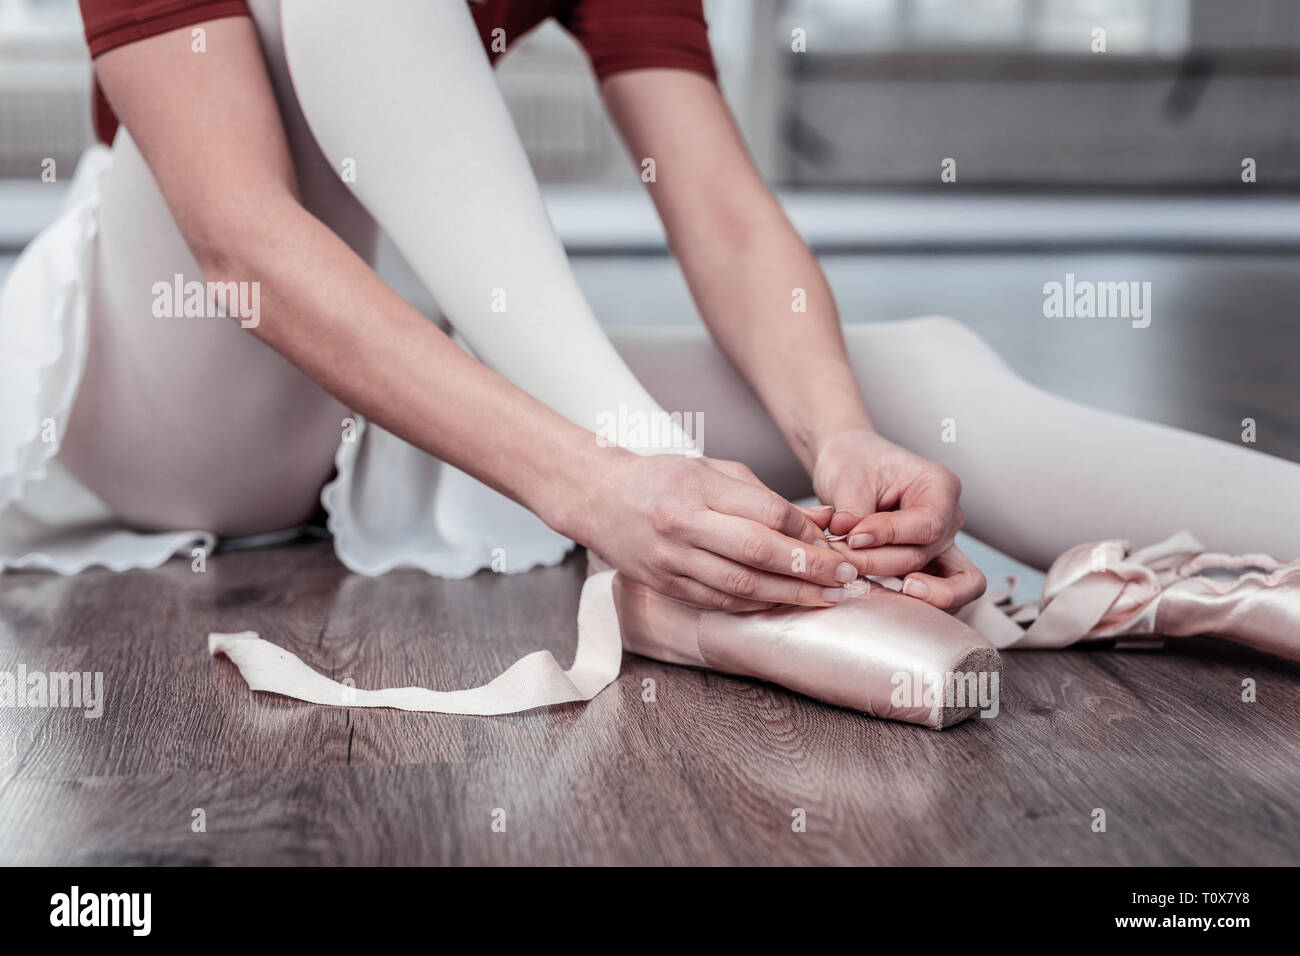 Nice young woman putting on her ballet shoes - Stock Image